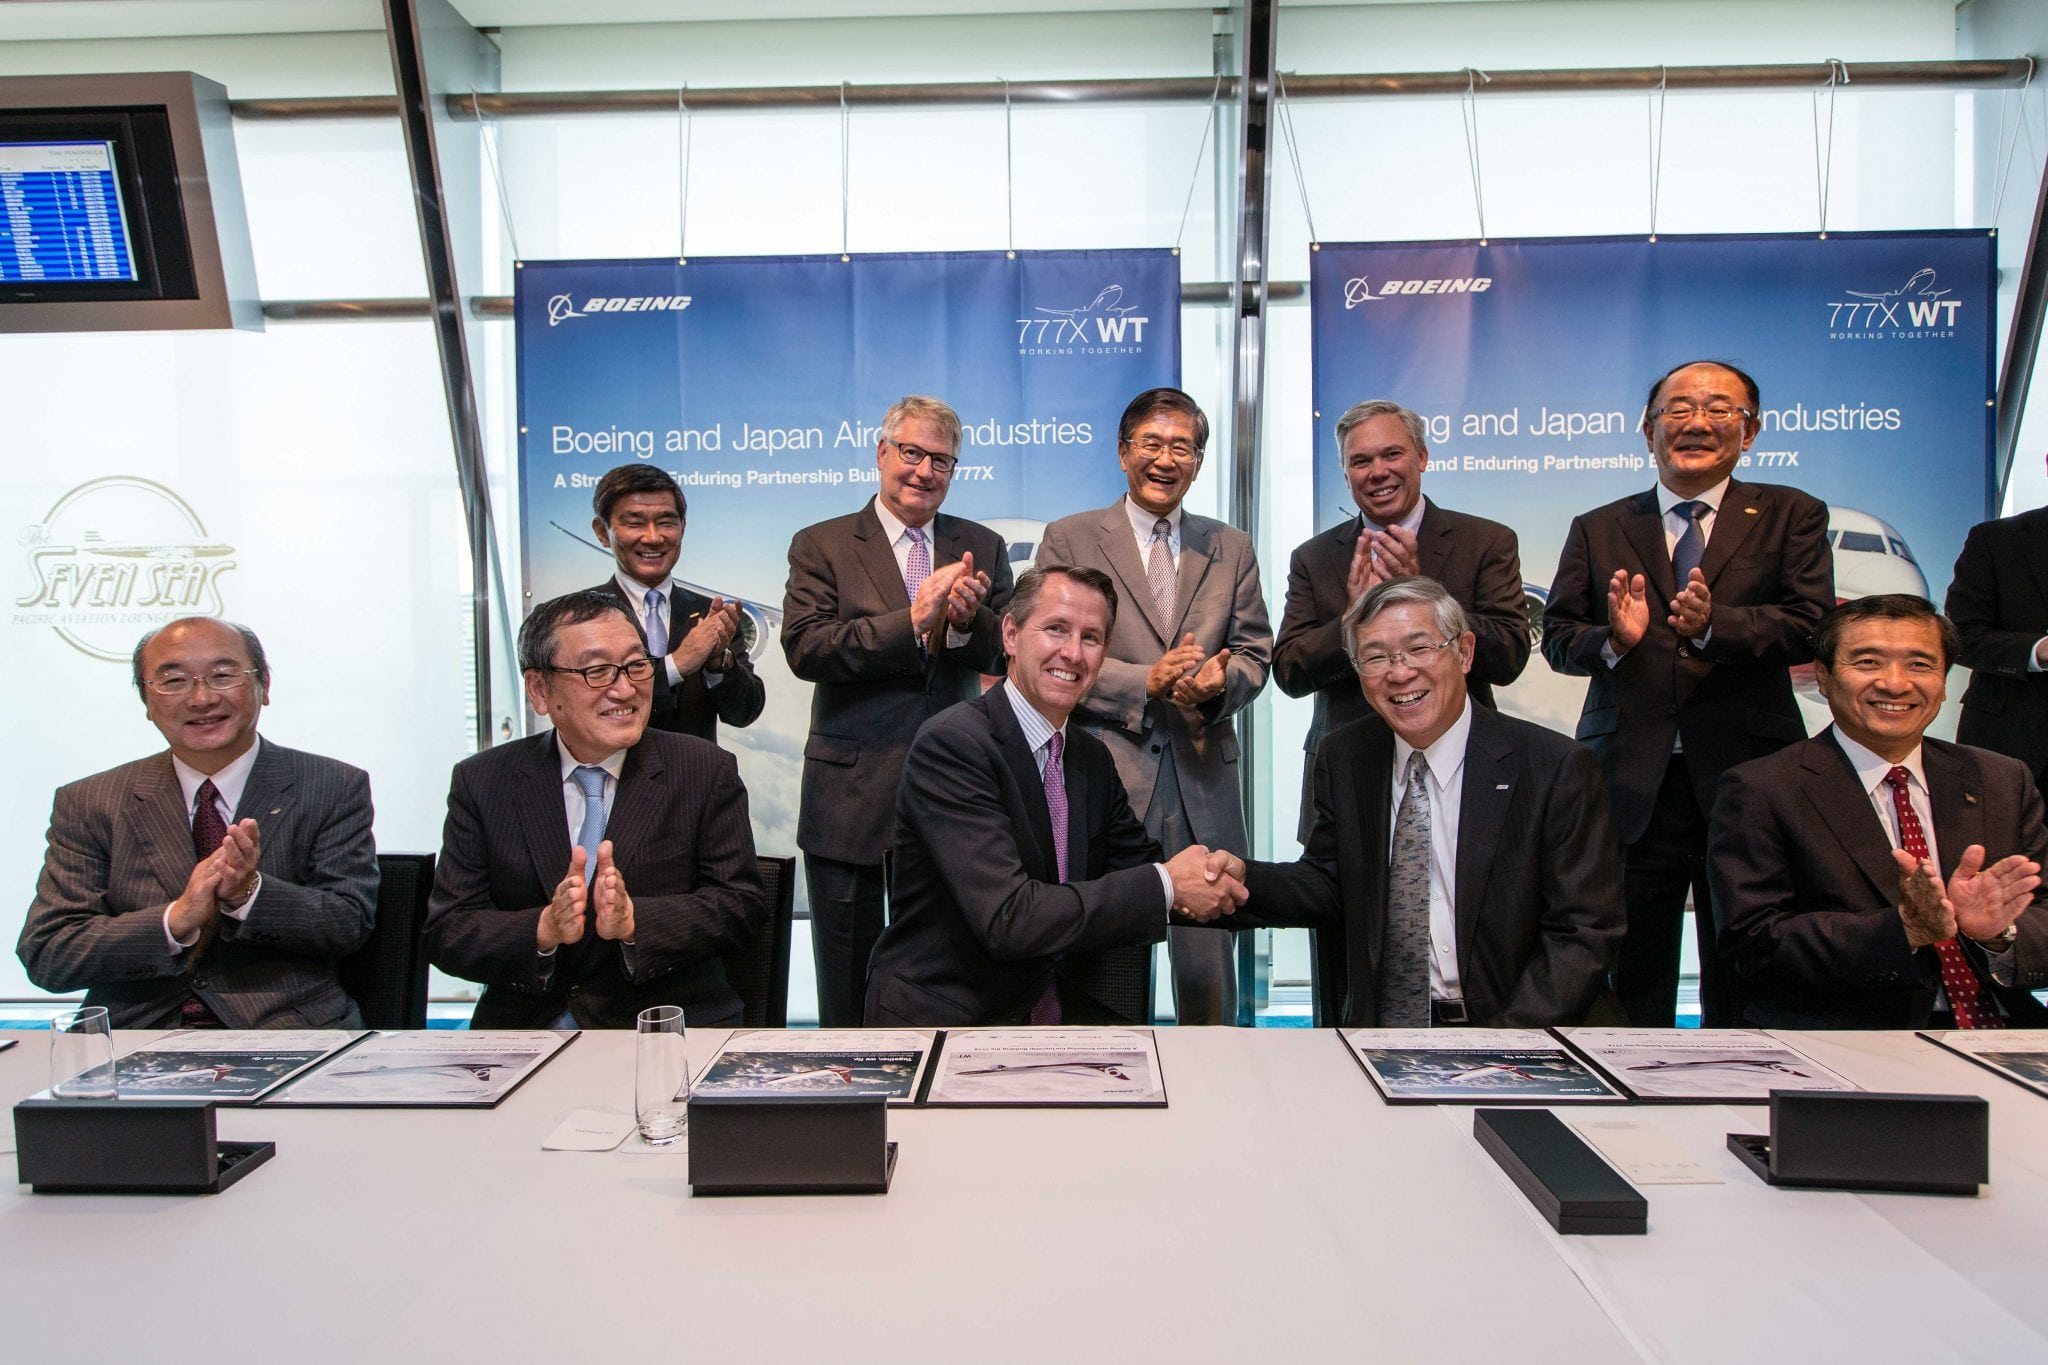 Boeing and Japanese partners signing an agreement for 777X production